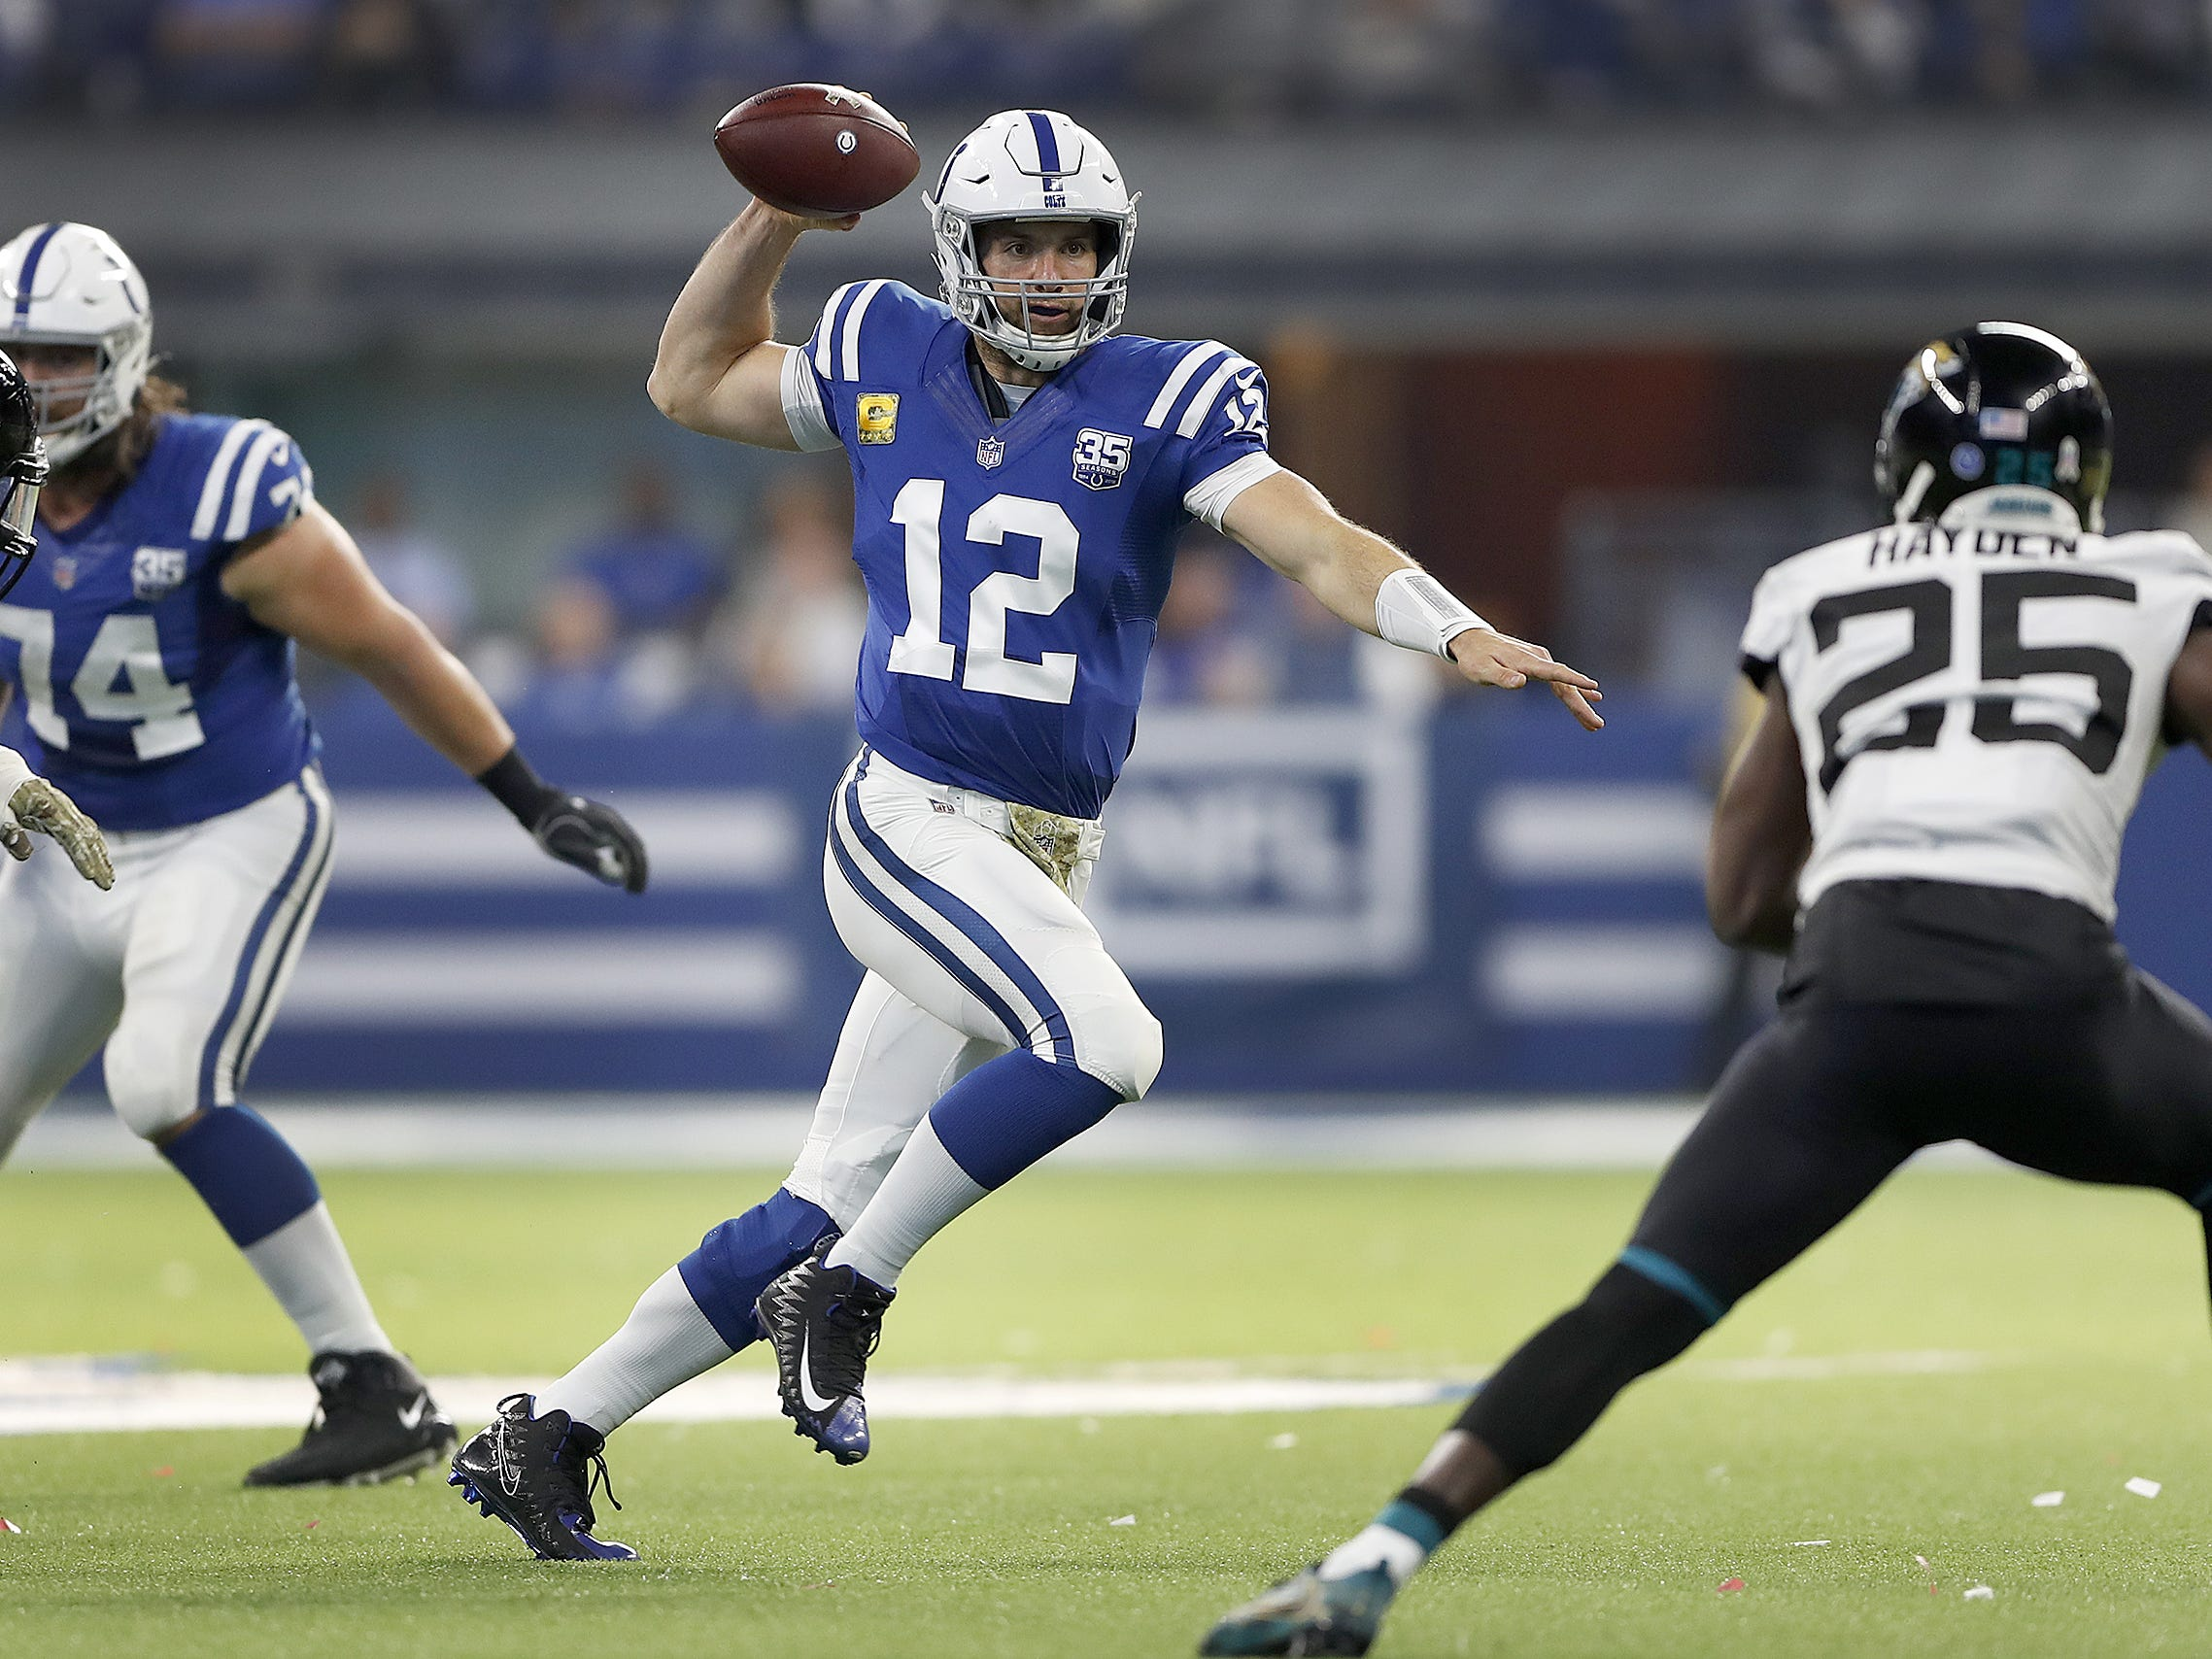 Indianapolis Colts quarterback Andrew Luck (12) scrambles and passes the football in the first half of their game at Lucas Oil Stadium on Sunday, Nov. 11, 2018.